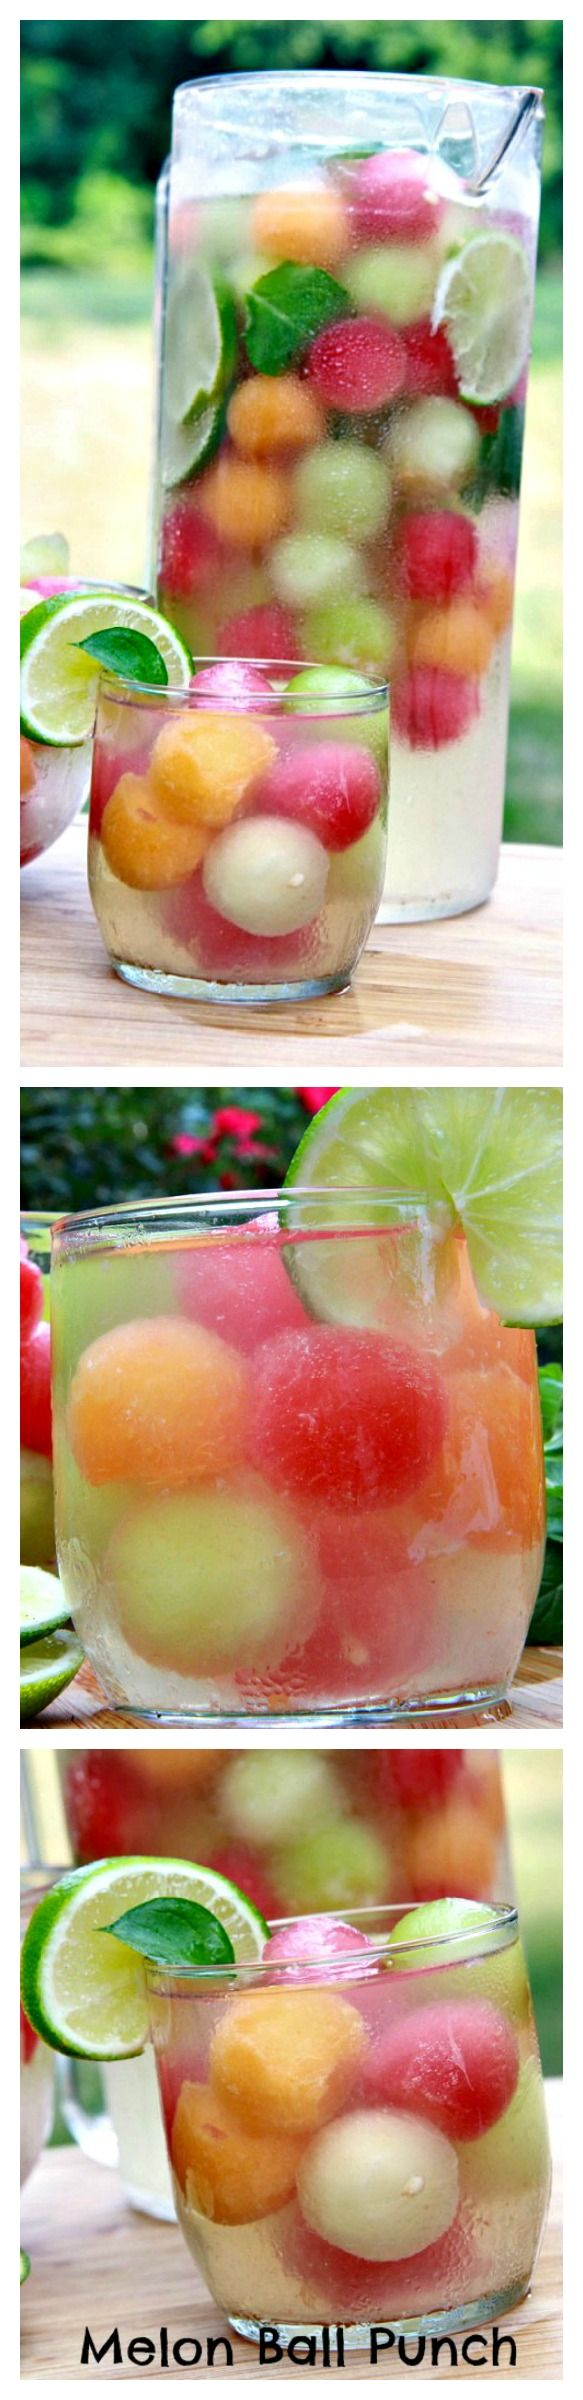 Frozen Melon Balls, gorgeous & yummy!